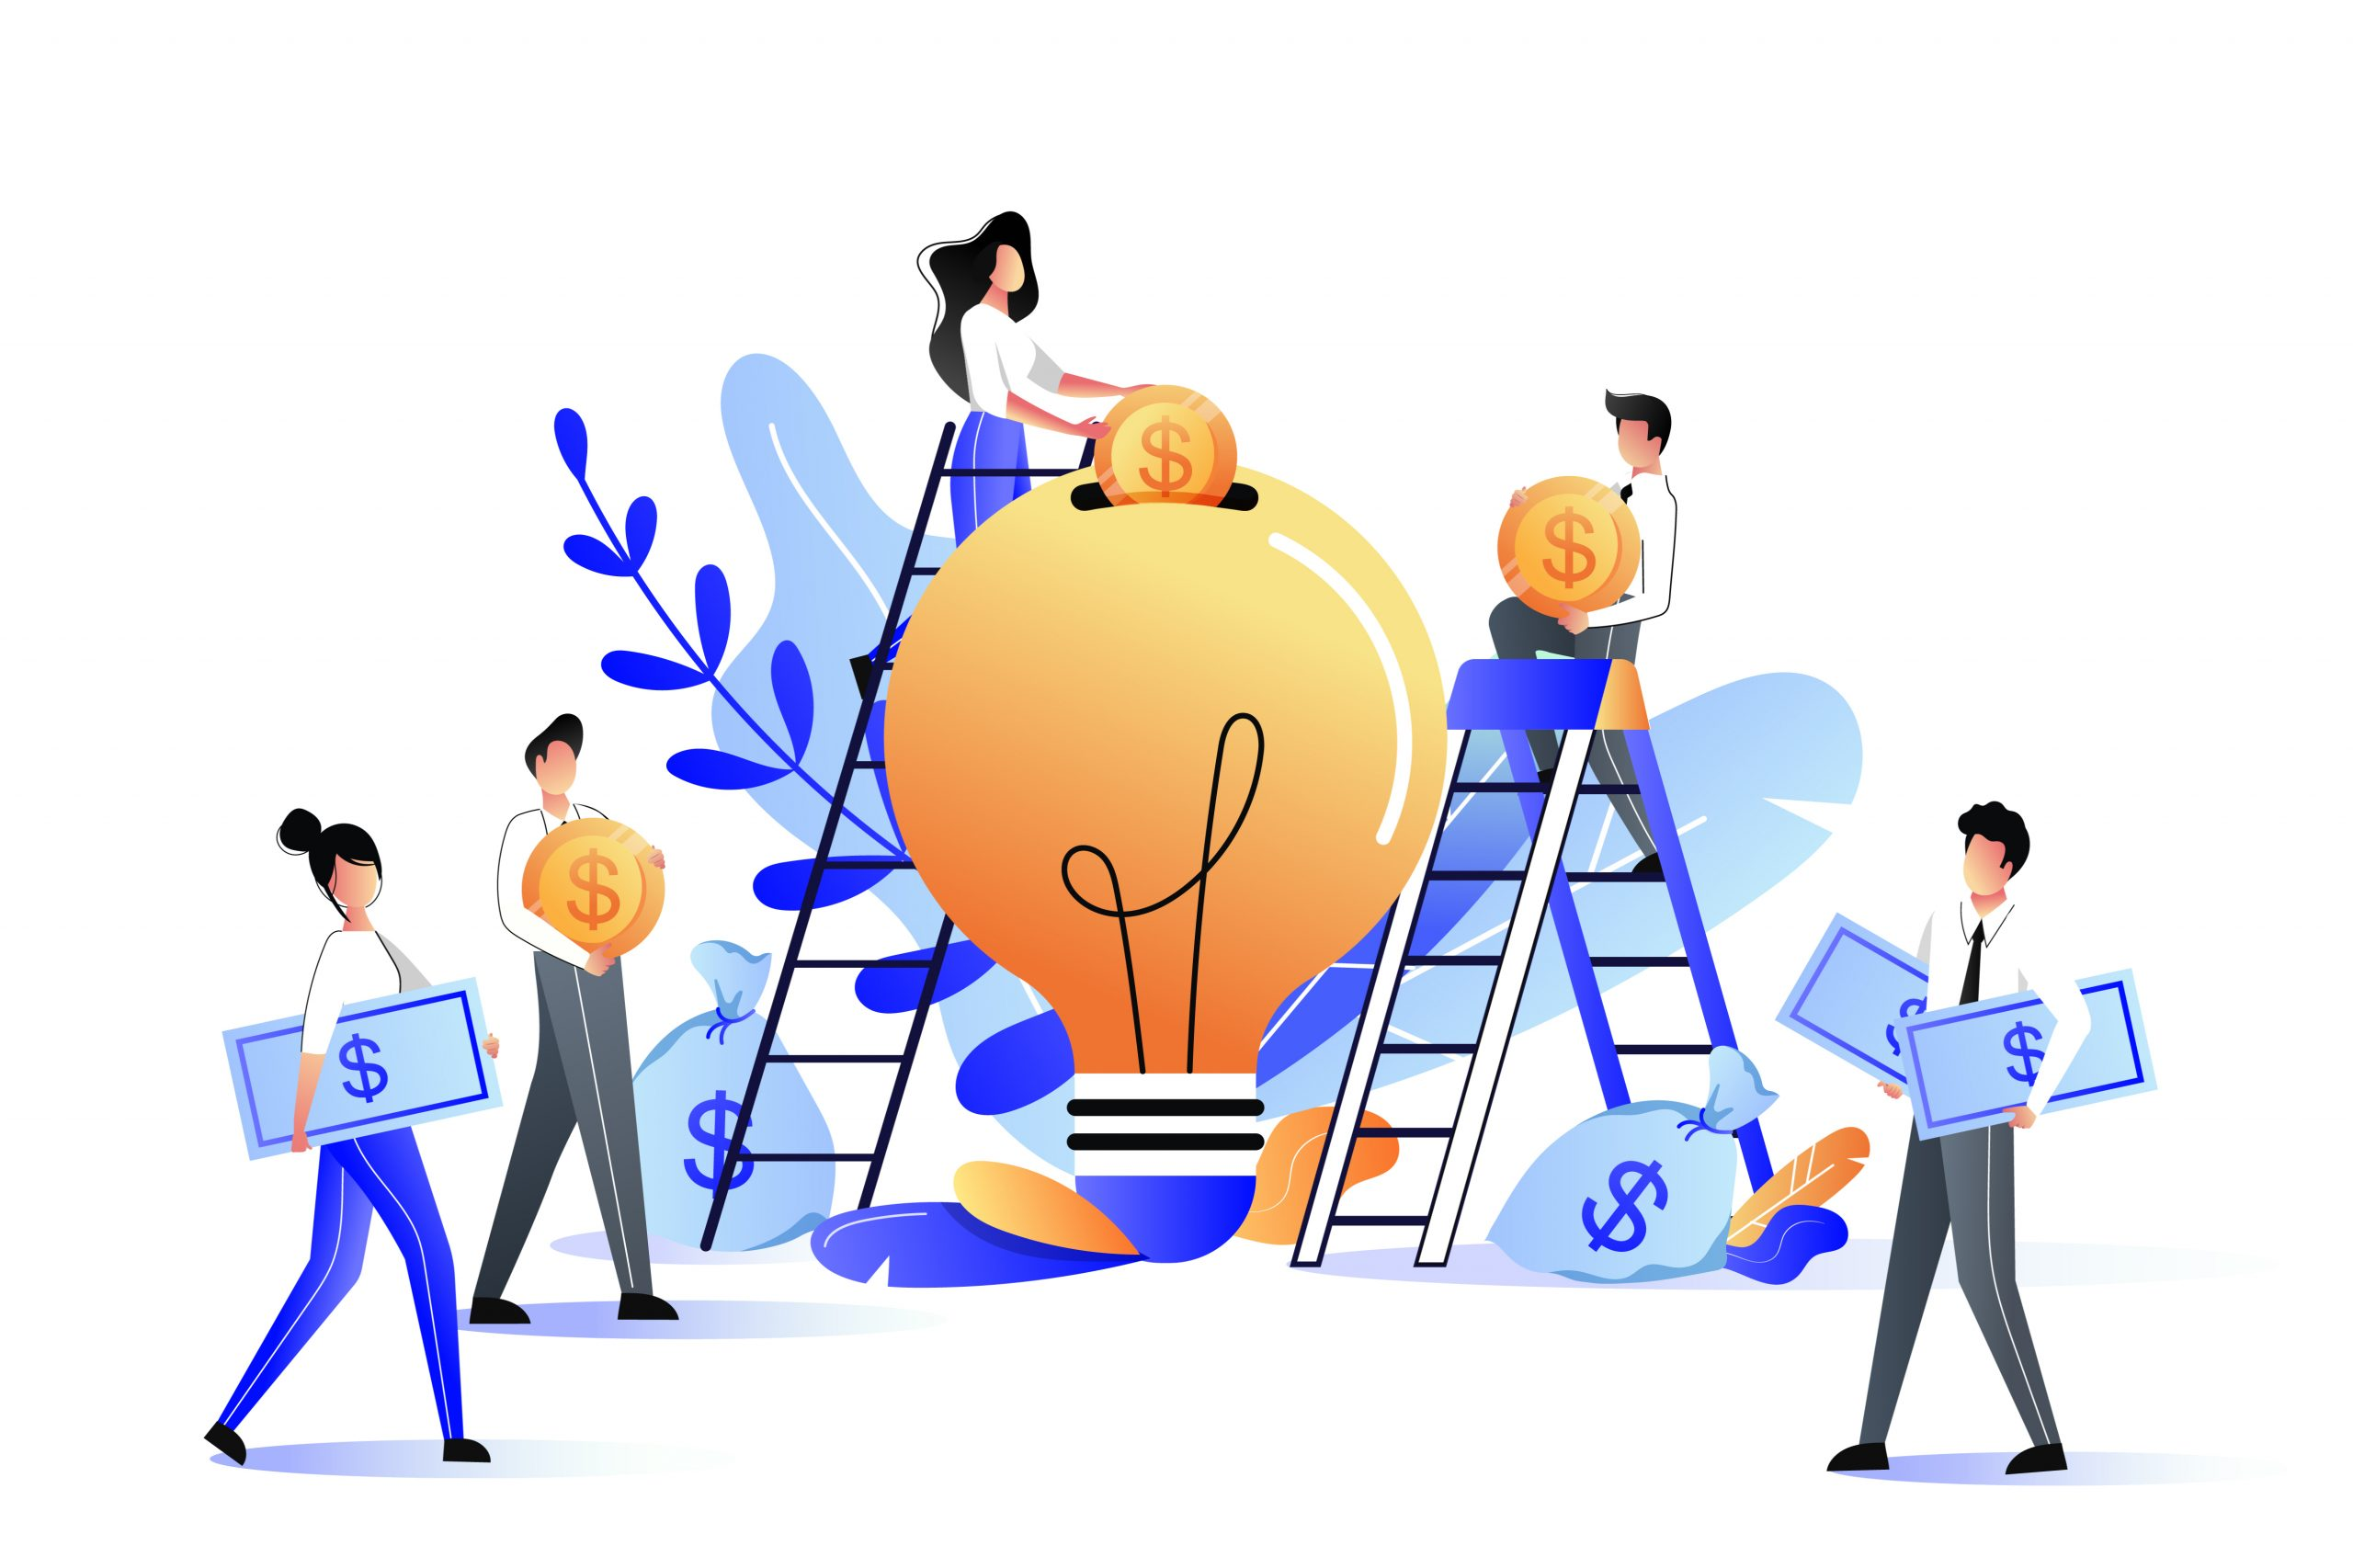 What we do not know about crowdfunding yet